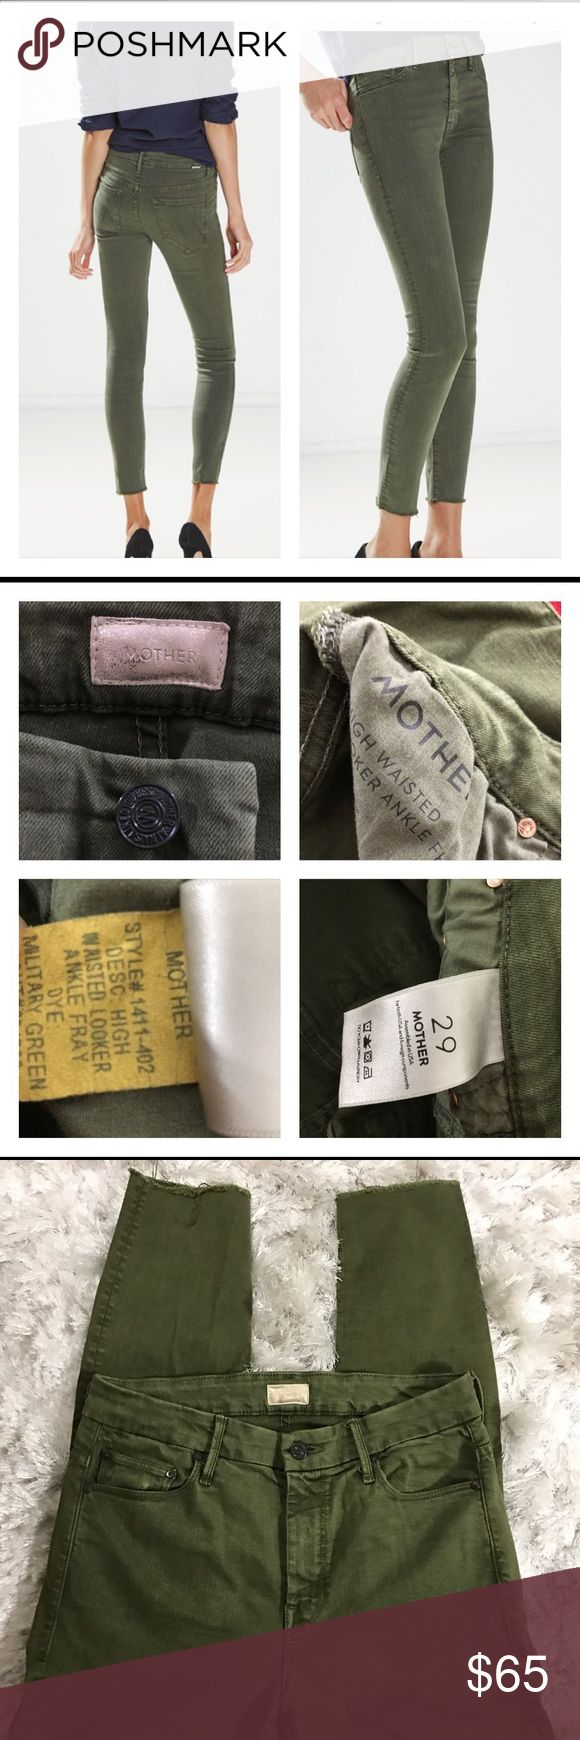 Mother jeans high waisted looker ankle fray Mother size 29 military green high waisted looker ankle fray very good condition MOTHER Jeans Ankle & Cropped